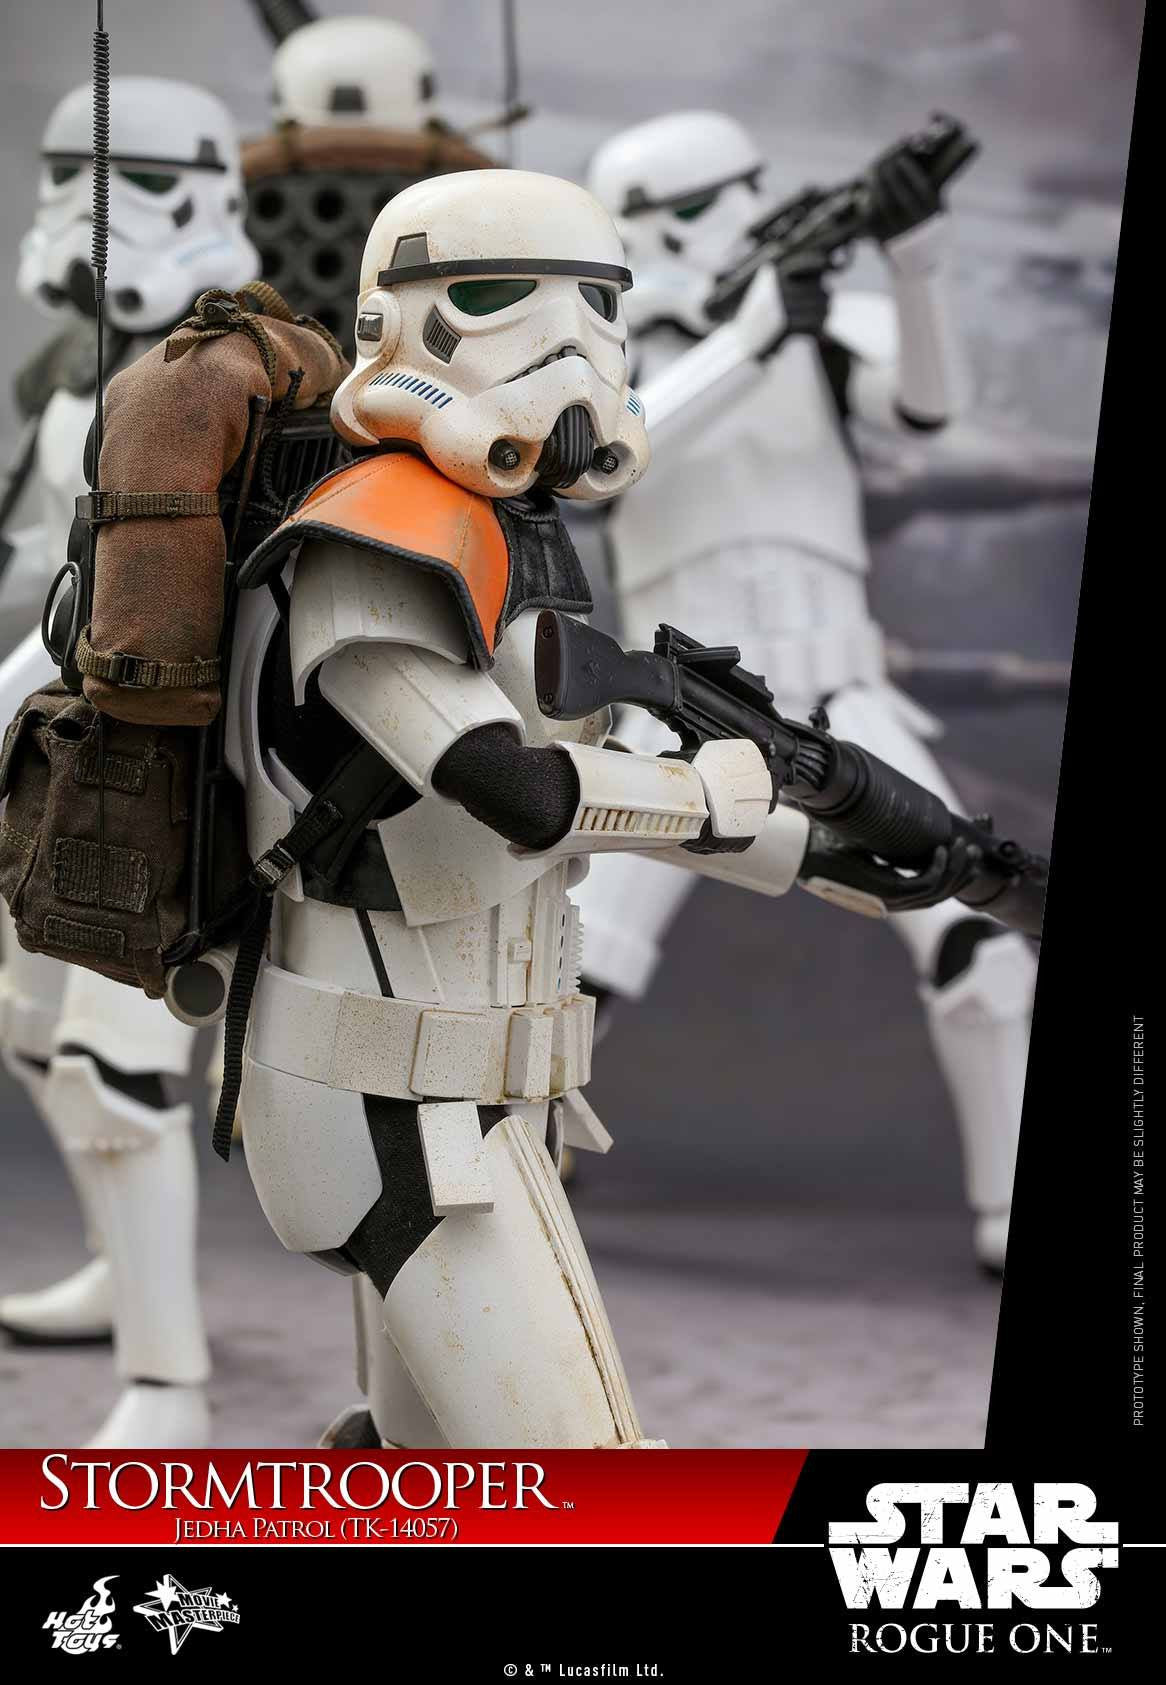 Hot Toys - MMS392 - Rogue One: A Star Wars Story - Stormtrooper Jedha Patrol (TK-14057) - Marvelous Toys - 3